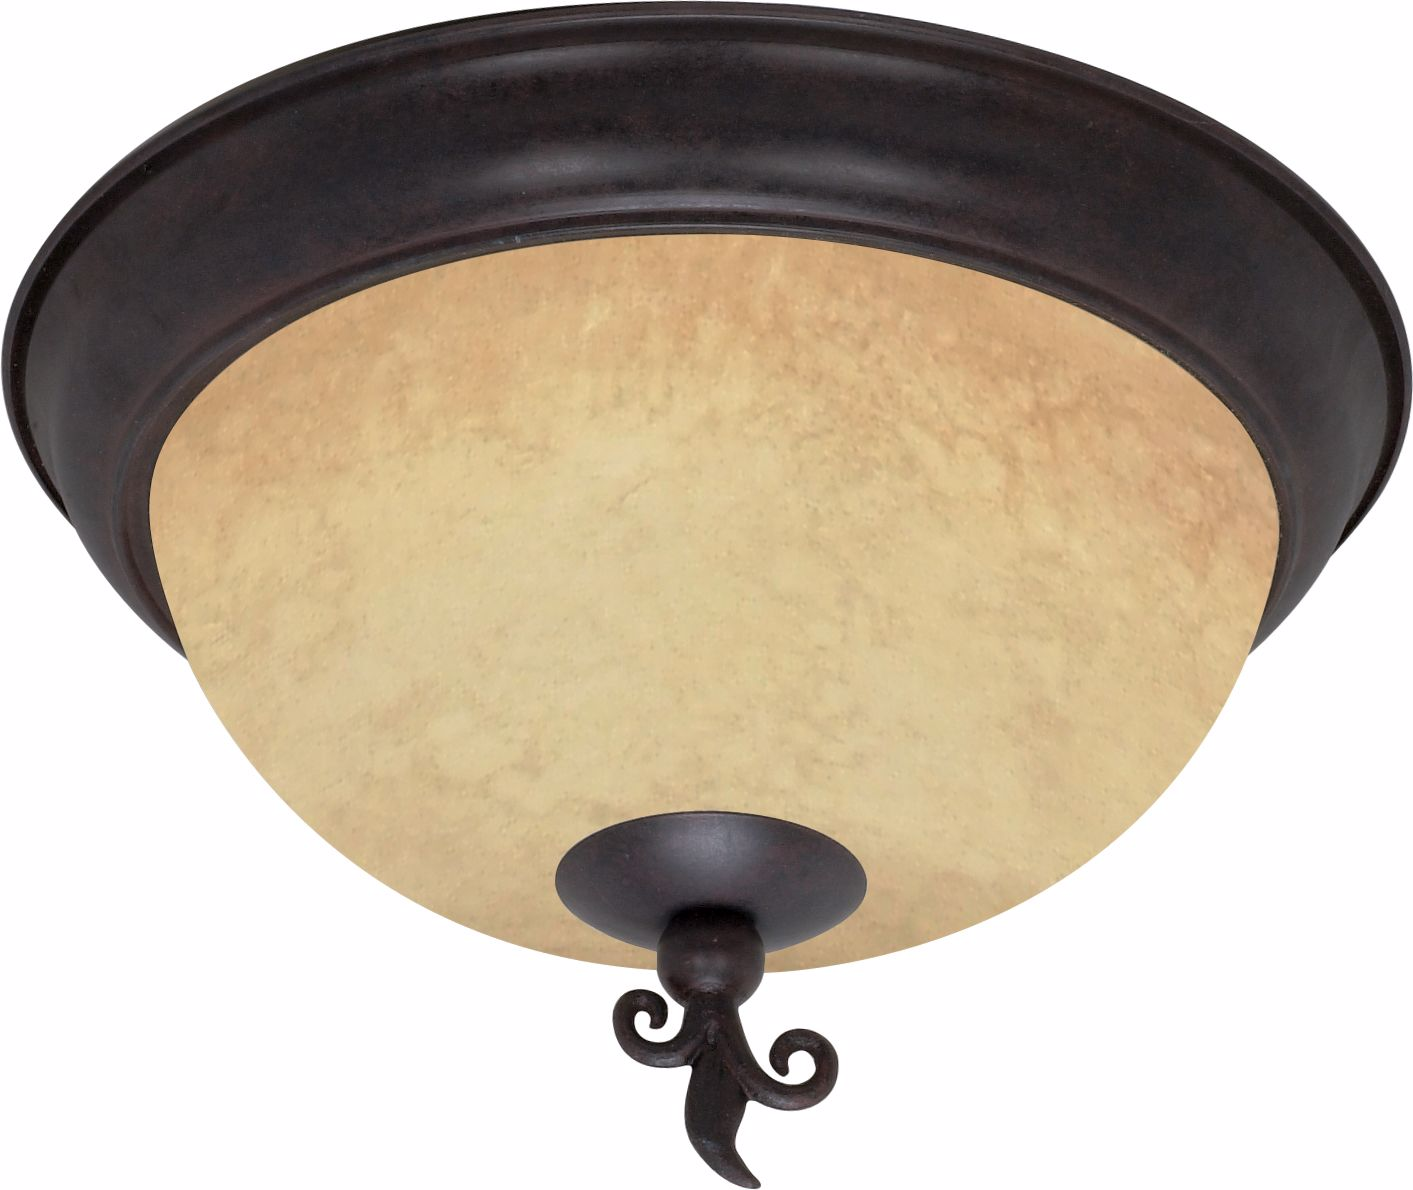 "Picture of NUVO Lighting 60/041 Tapas - 3 Light - 15"" - Flush Mount - with Tuscan Suede Glass"